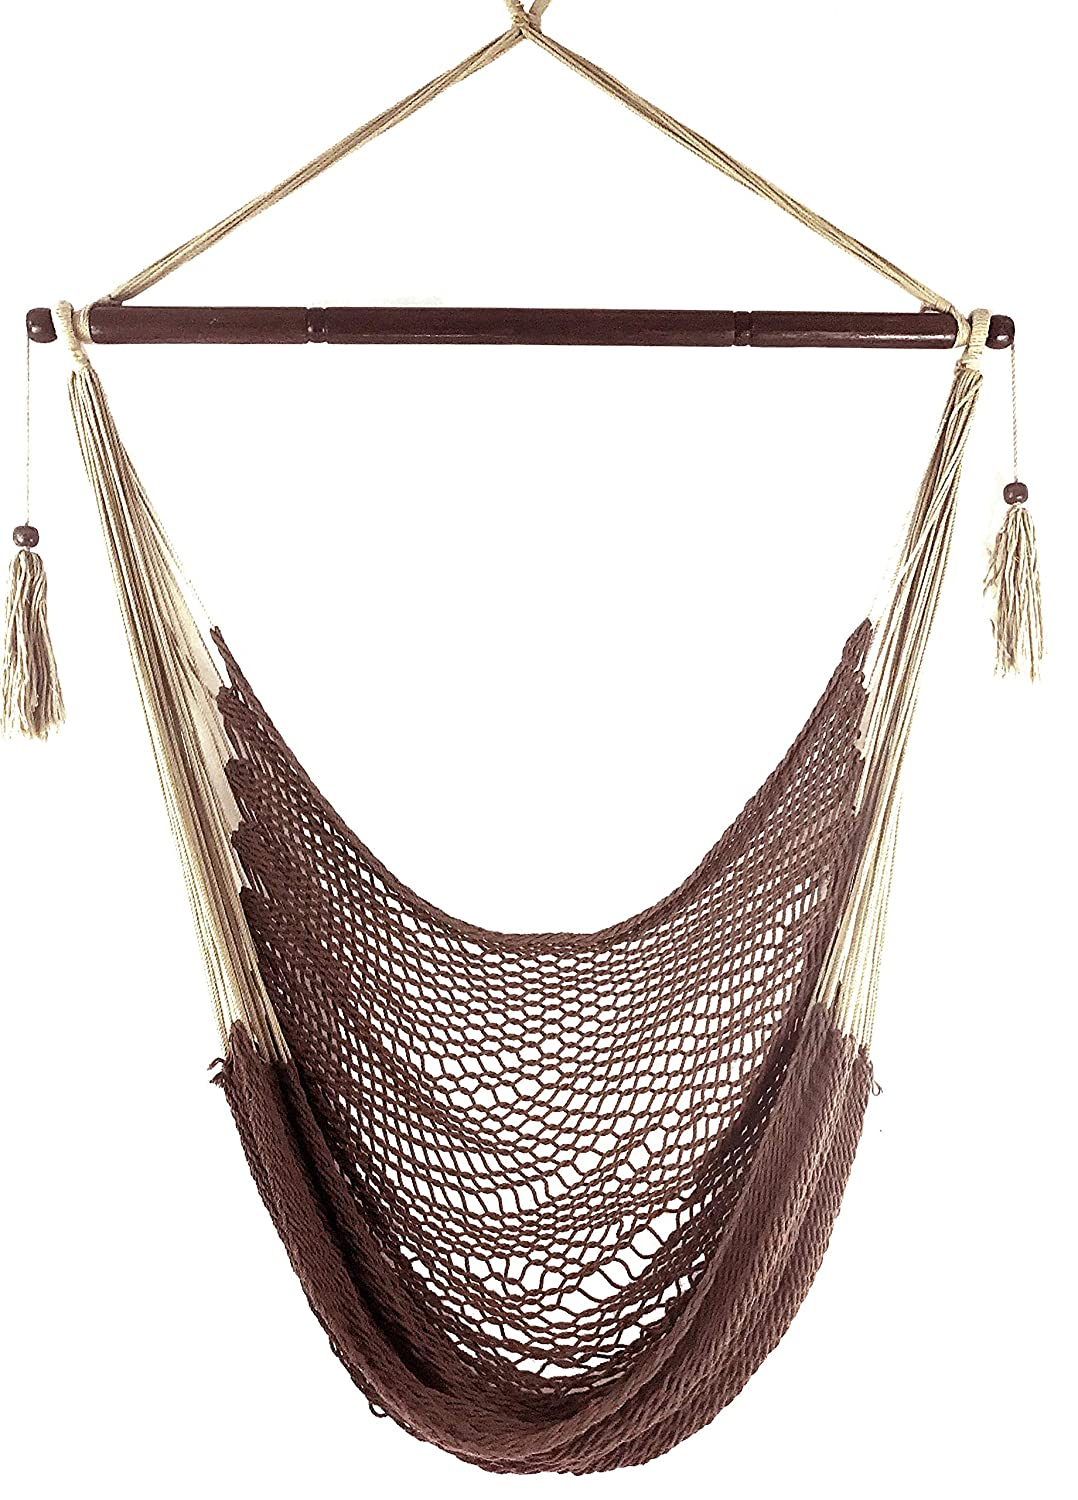 Charmant Krazy Outdoors Mayan Hammock Chair   Large Cotton Rope Hanging Chair Swing  With Wood Bar   Comfortable, Lightweight   For Indoor U0026 Outdoor Porch,  Yard, ...